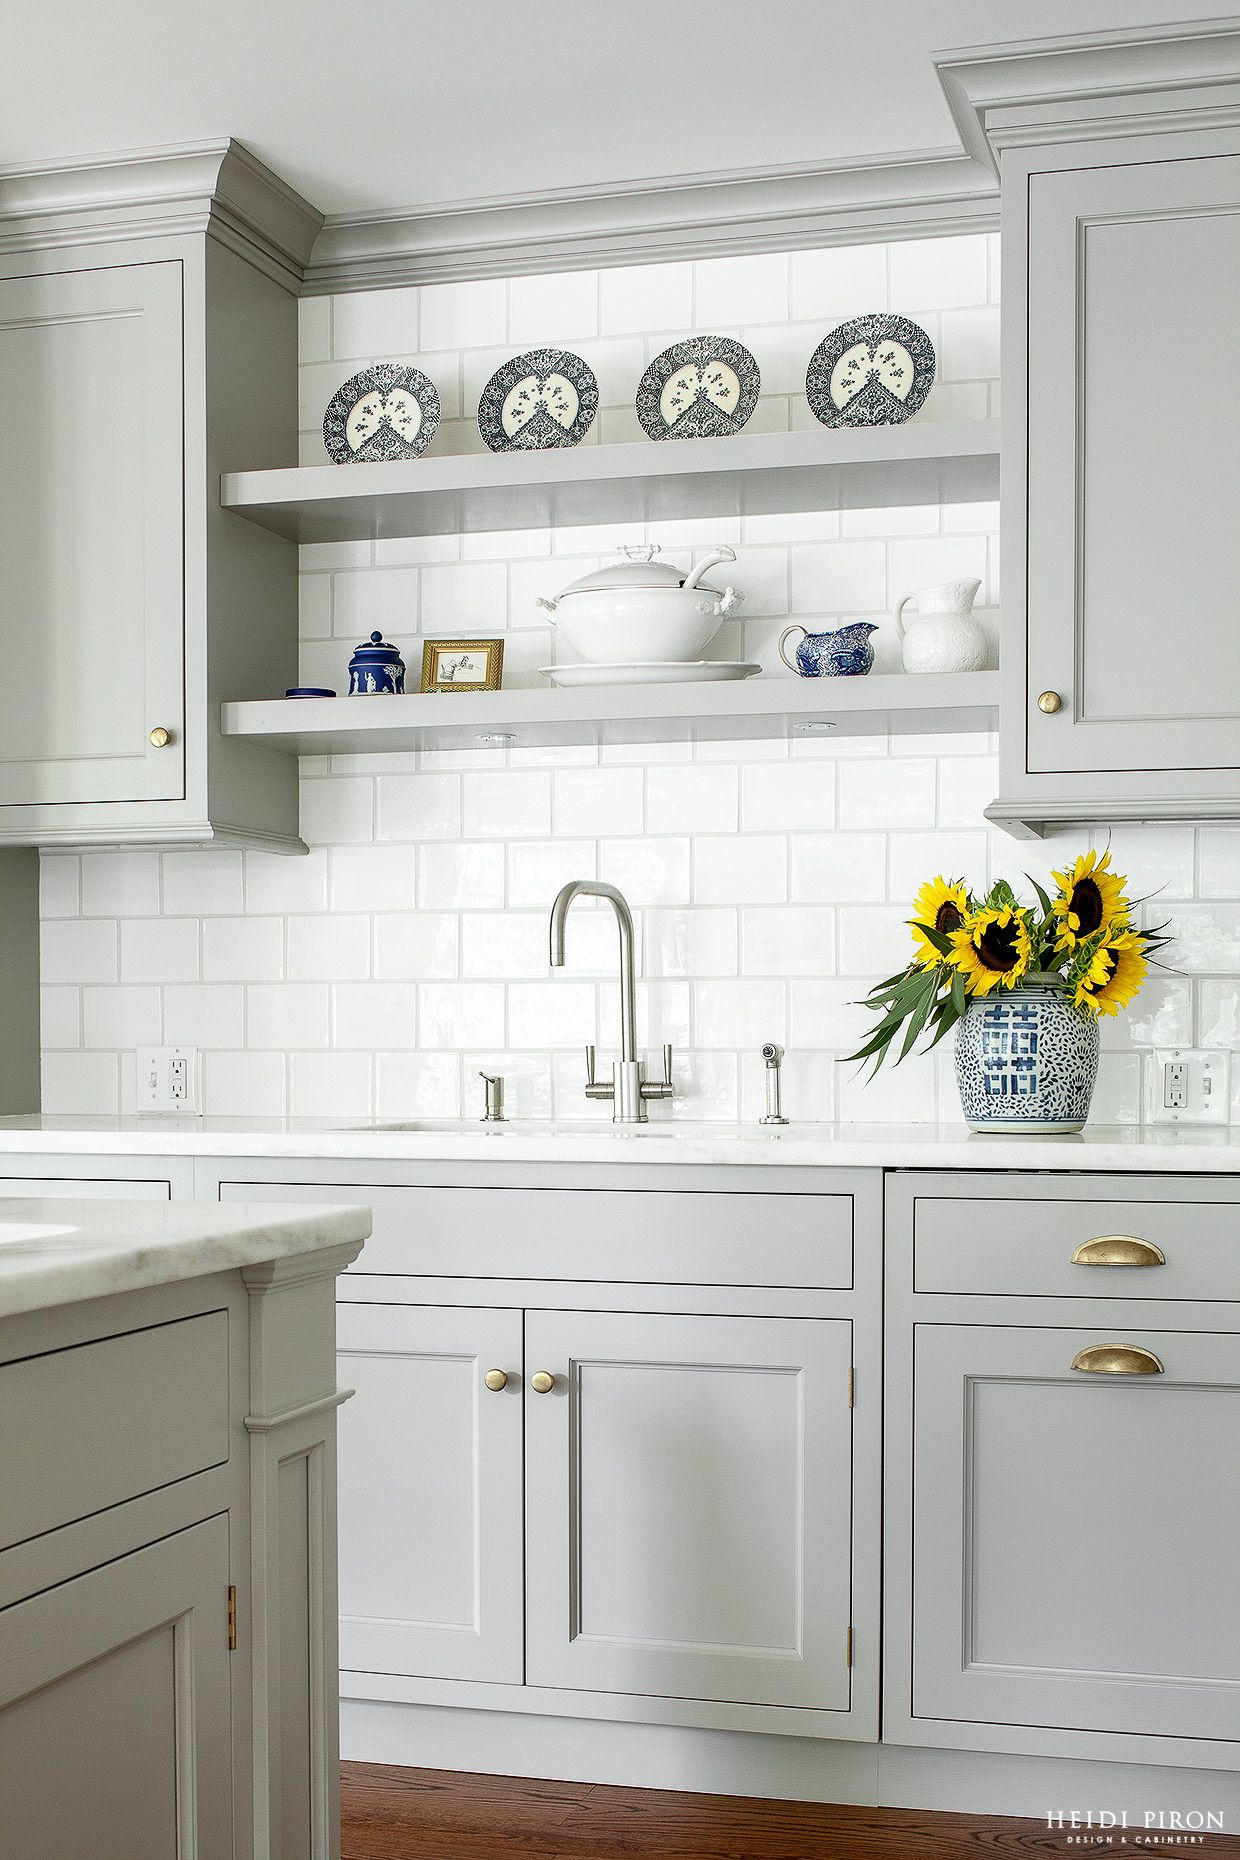 Elegant Heidi Piron Design And Cabinetry   Traditional   Shelving Over Sink When No  Window